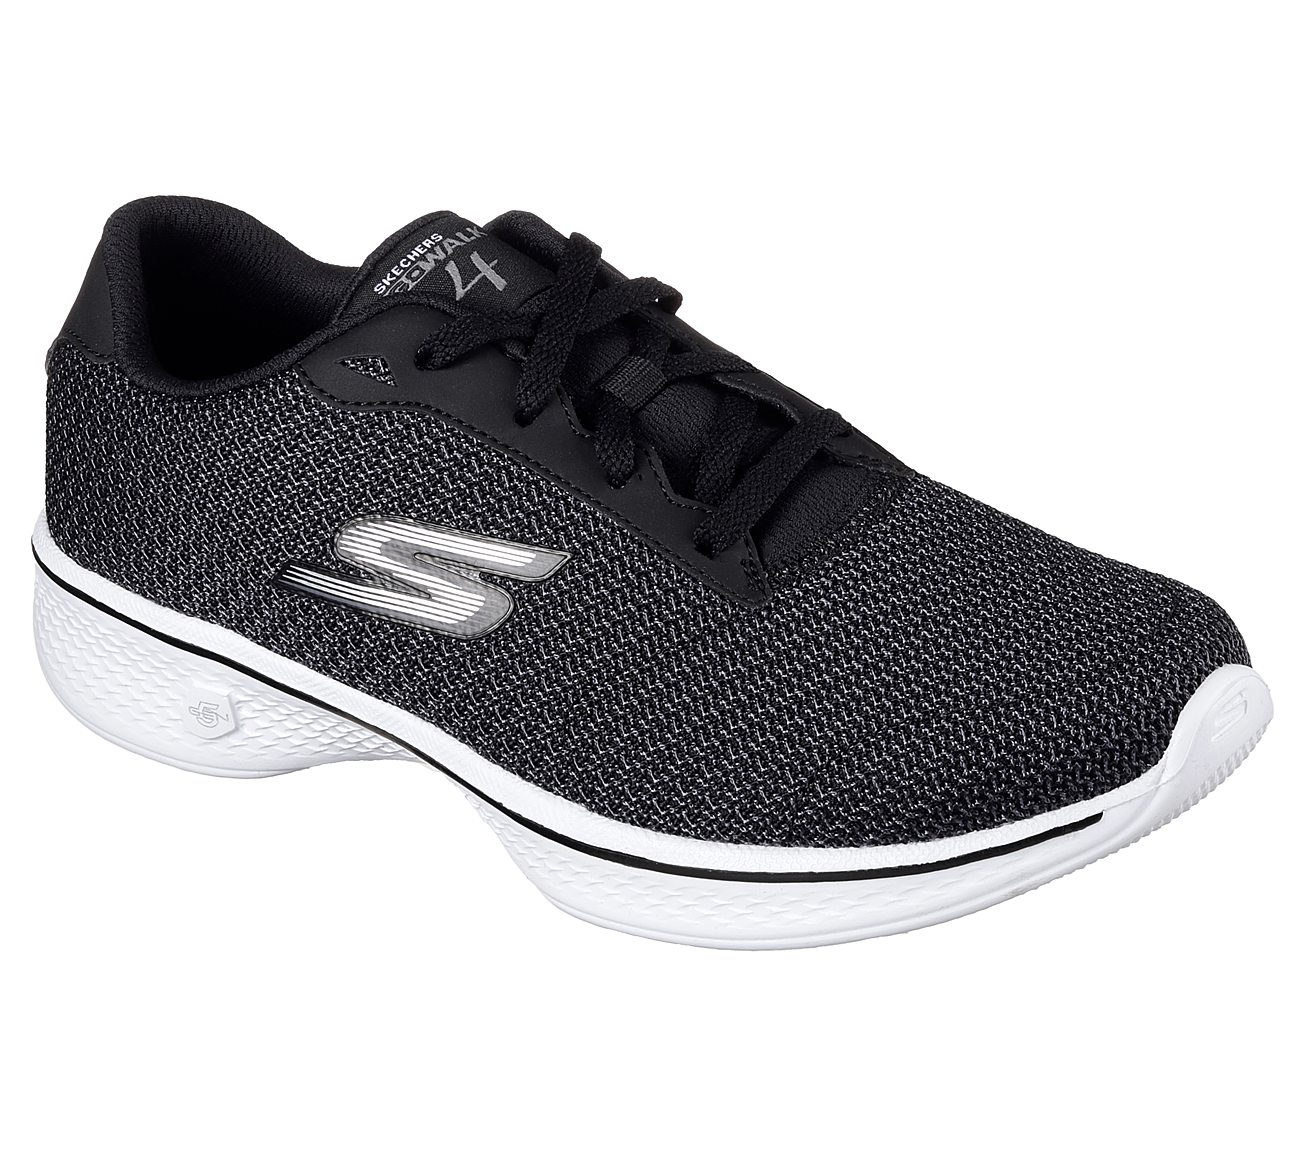 e4a26736bbea7 Buy SKECHERS Skechers GOwalk 4 - Glorify Skechers Performance Shoes ...